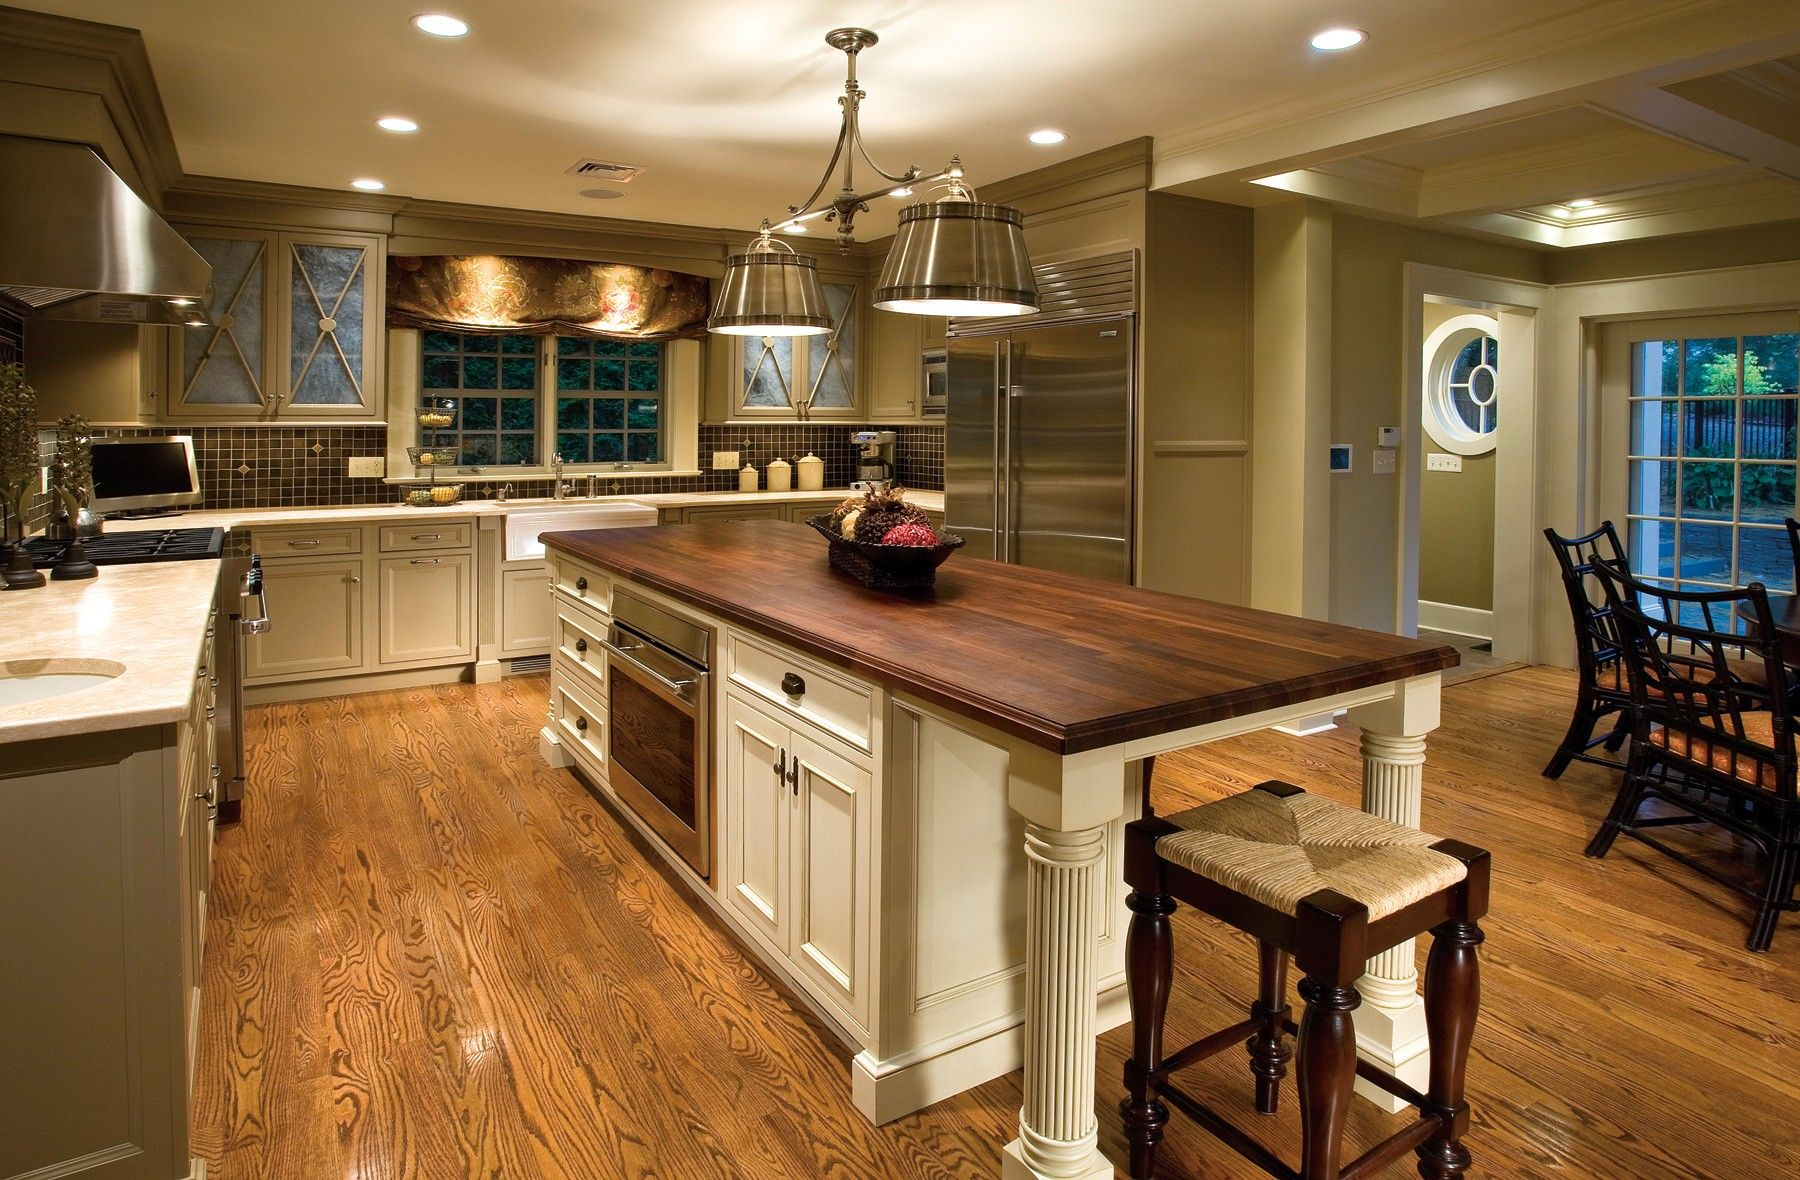 Amazing Oak Kitchen Table Top Class Material Applying White And Dark Brown Color With Storage Added S Home Kitchens Traditional Kitchen Cabinets Rustic Kitchen